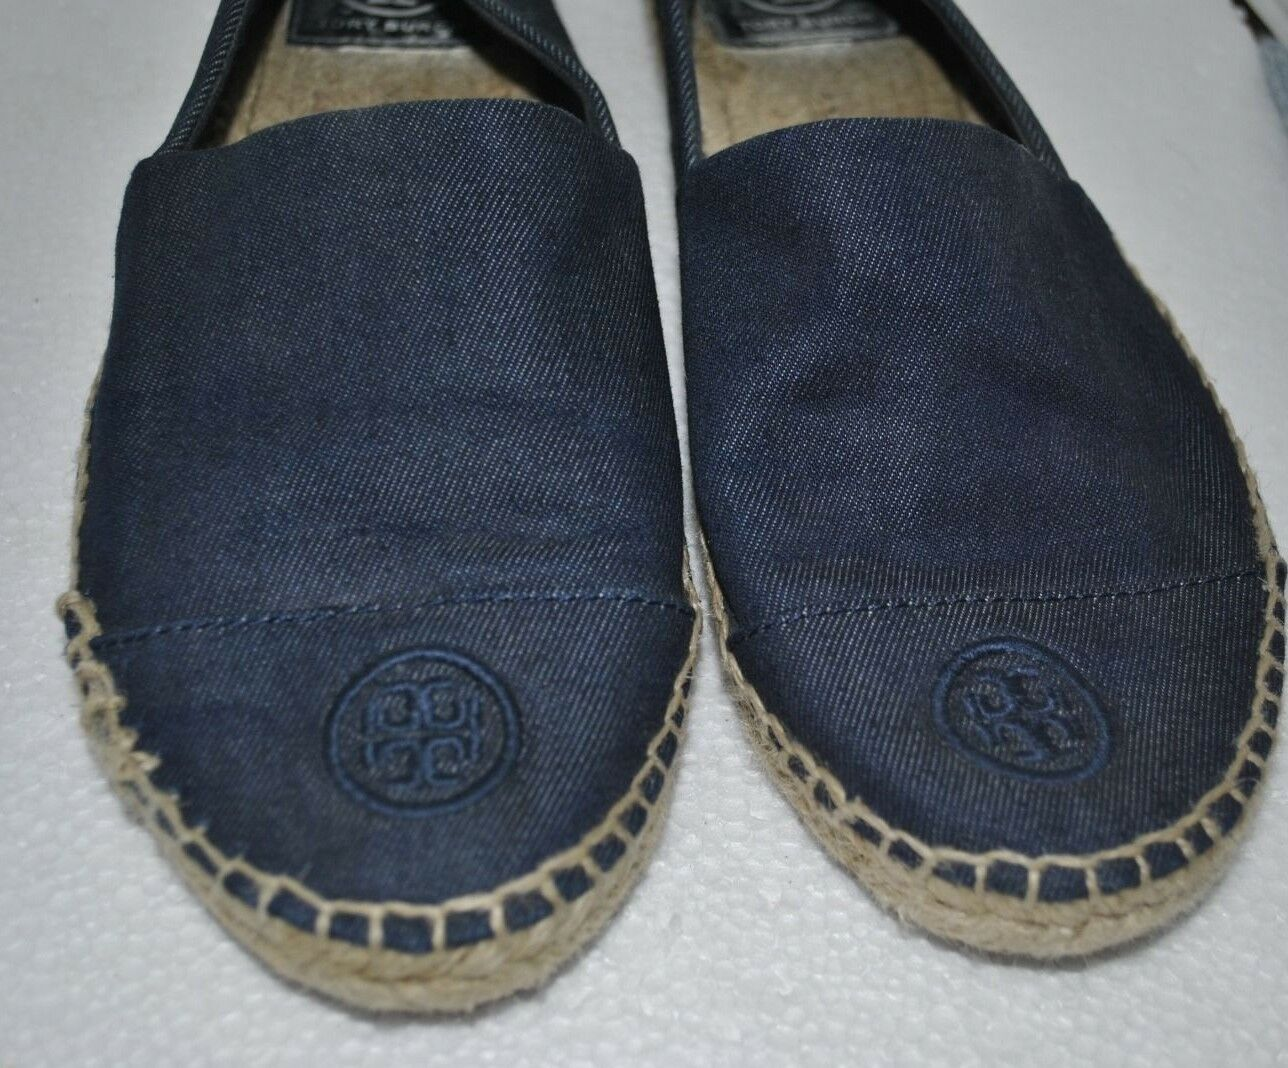 Tory Burch Flat Logo Espadrilles in Denim Navy Blau Casual Größe 10M PREOWNED